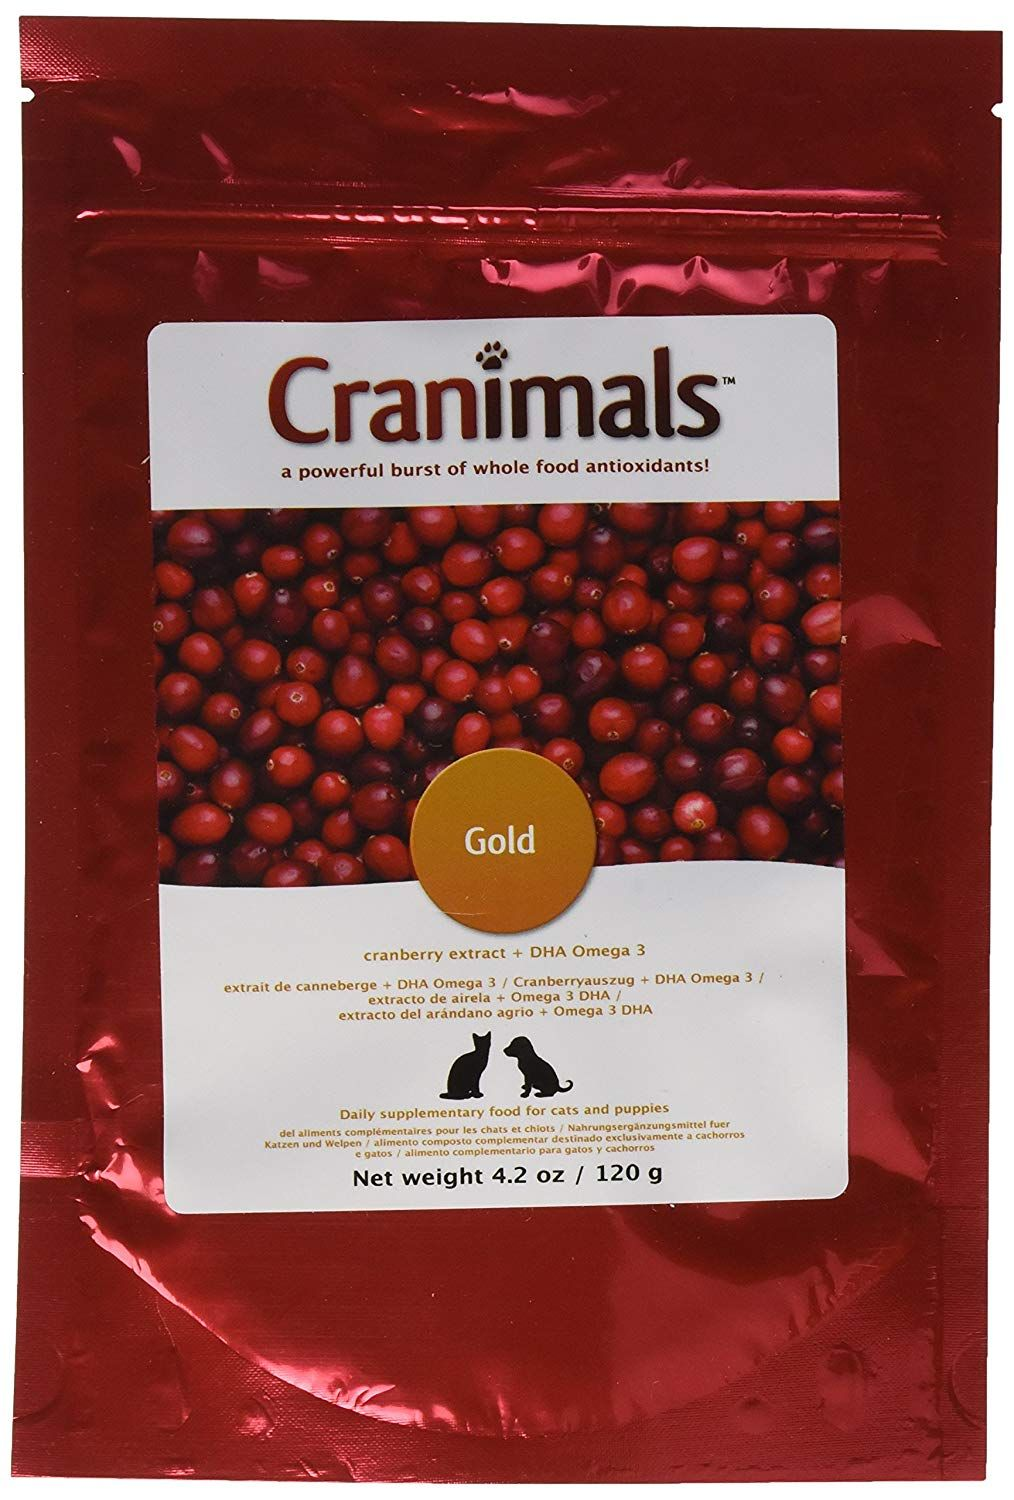 Cranimals Whole Food Antioxidants Gold Nice Of Your Presence To Drop By To Visit The Photo This Is An Aff Herbal Supplements Whole Food Recipes Herbalism